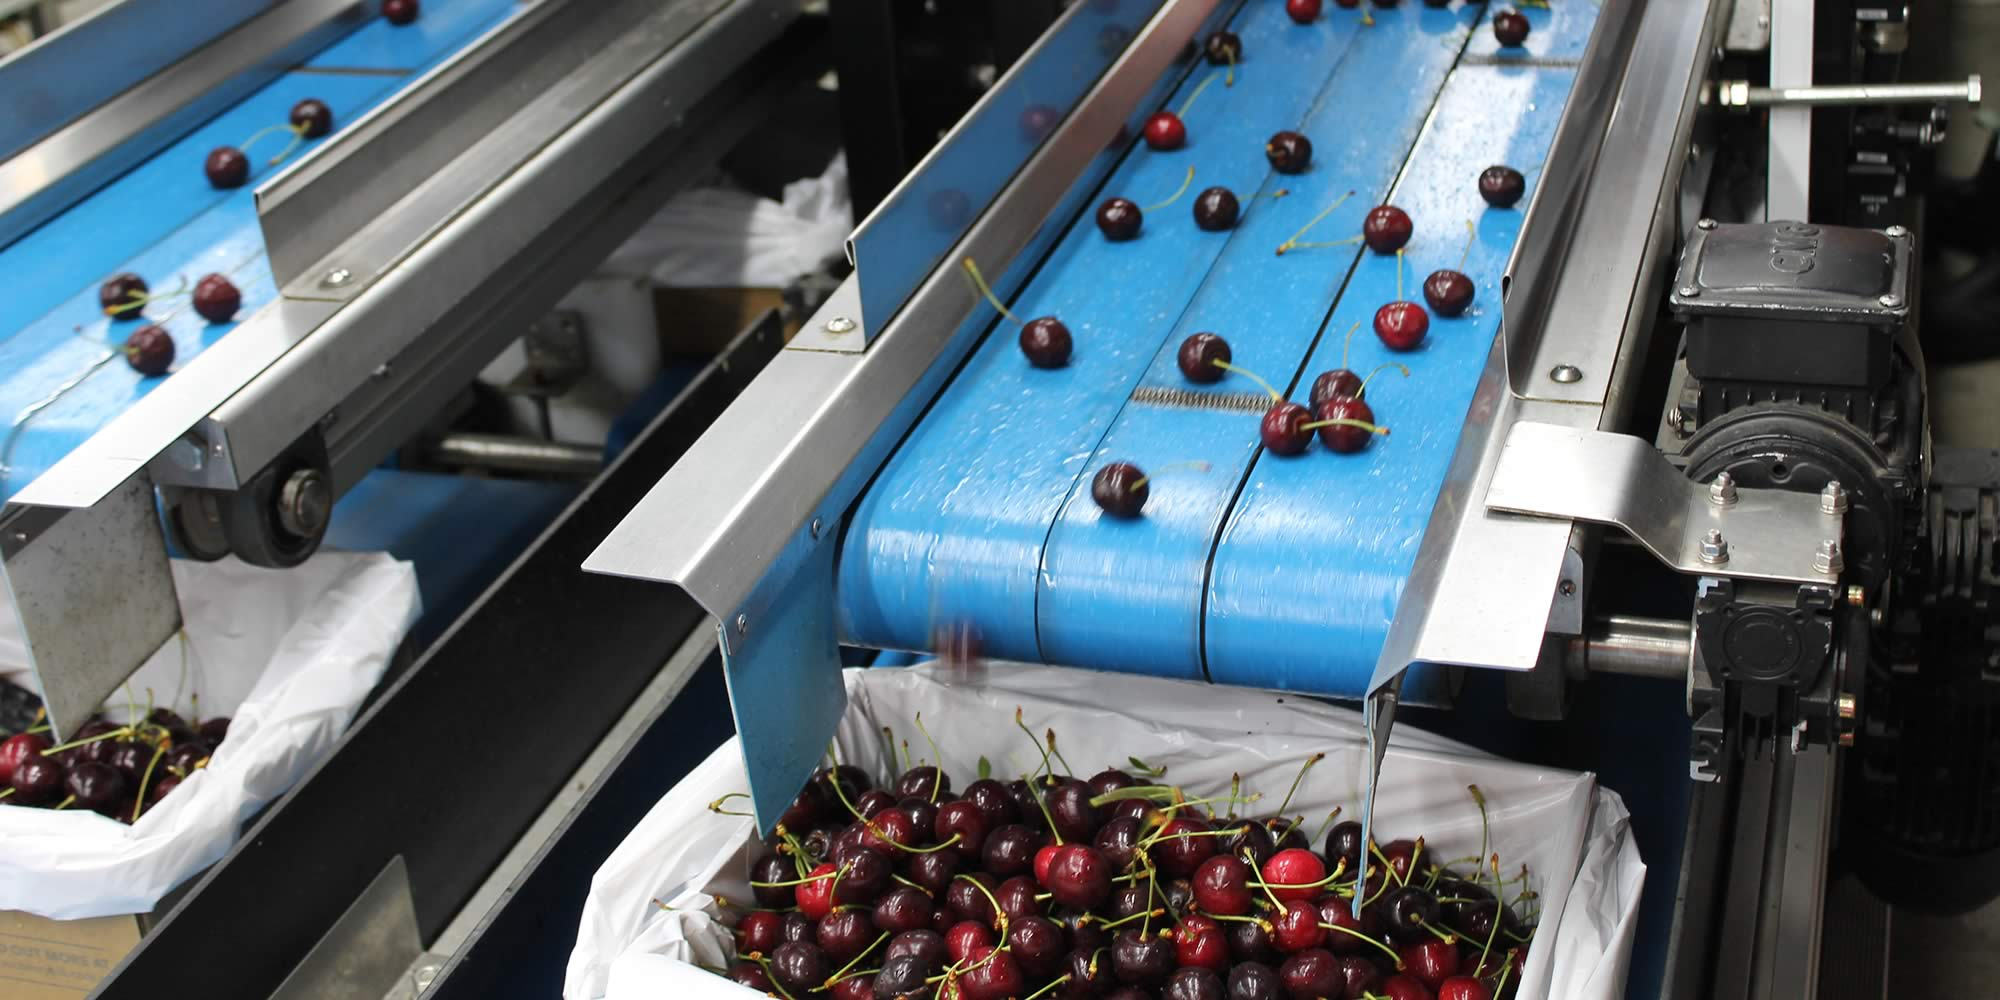 Slide - Cherry sorting